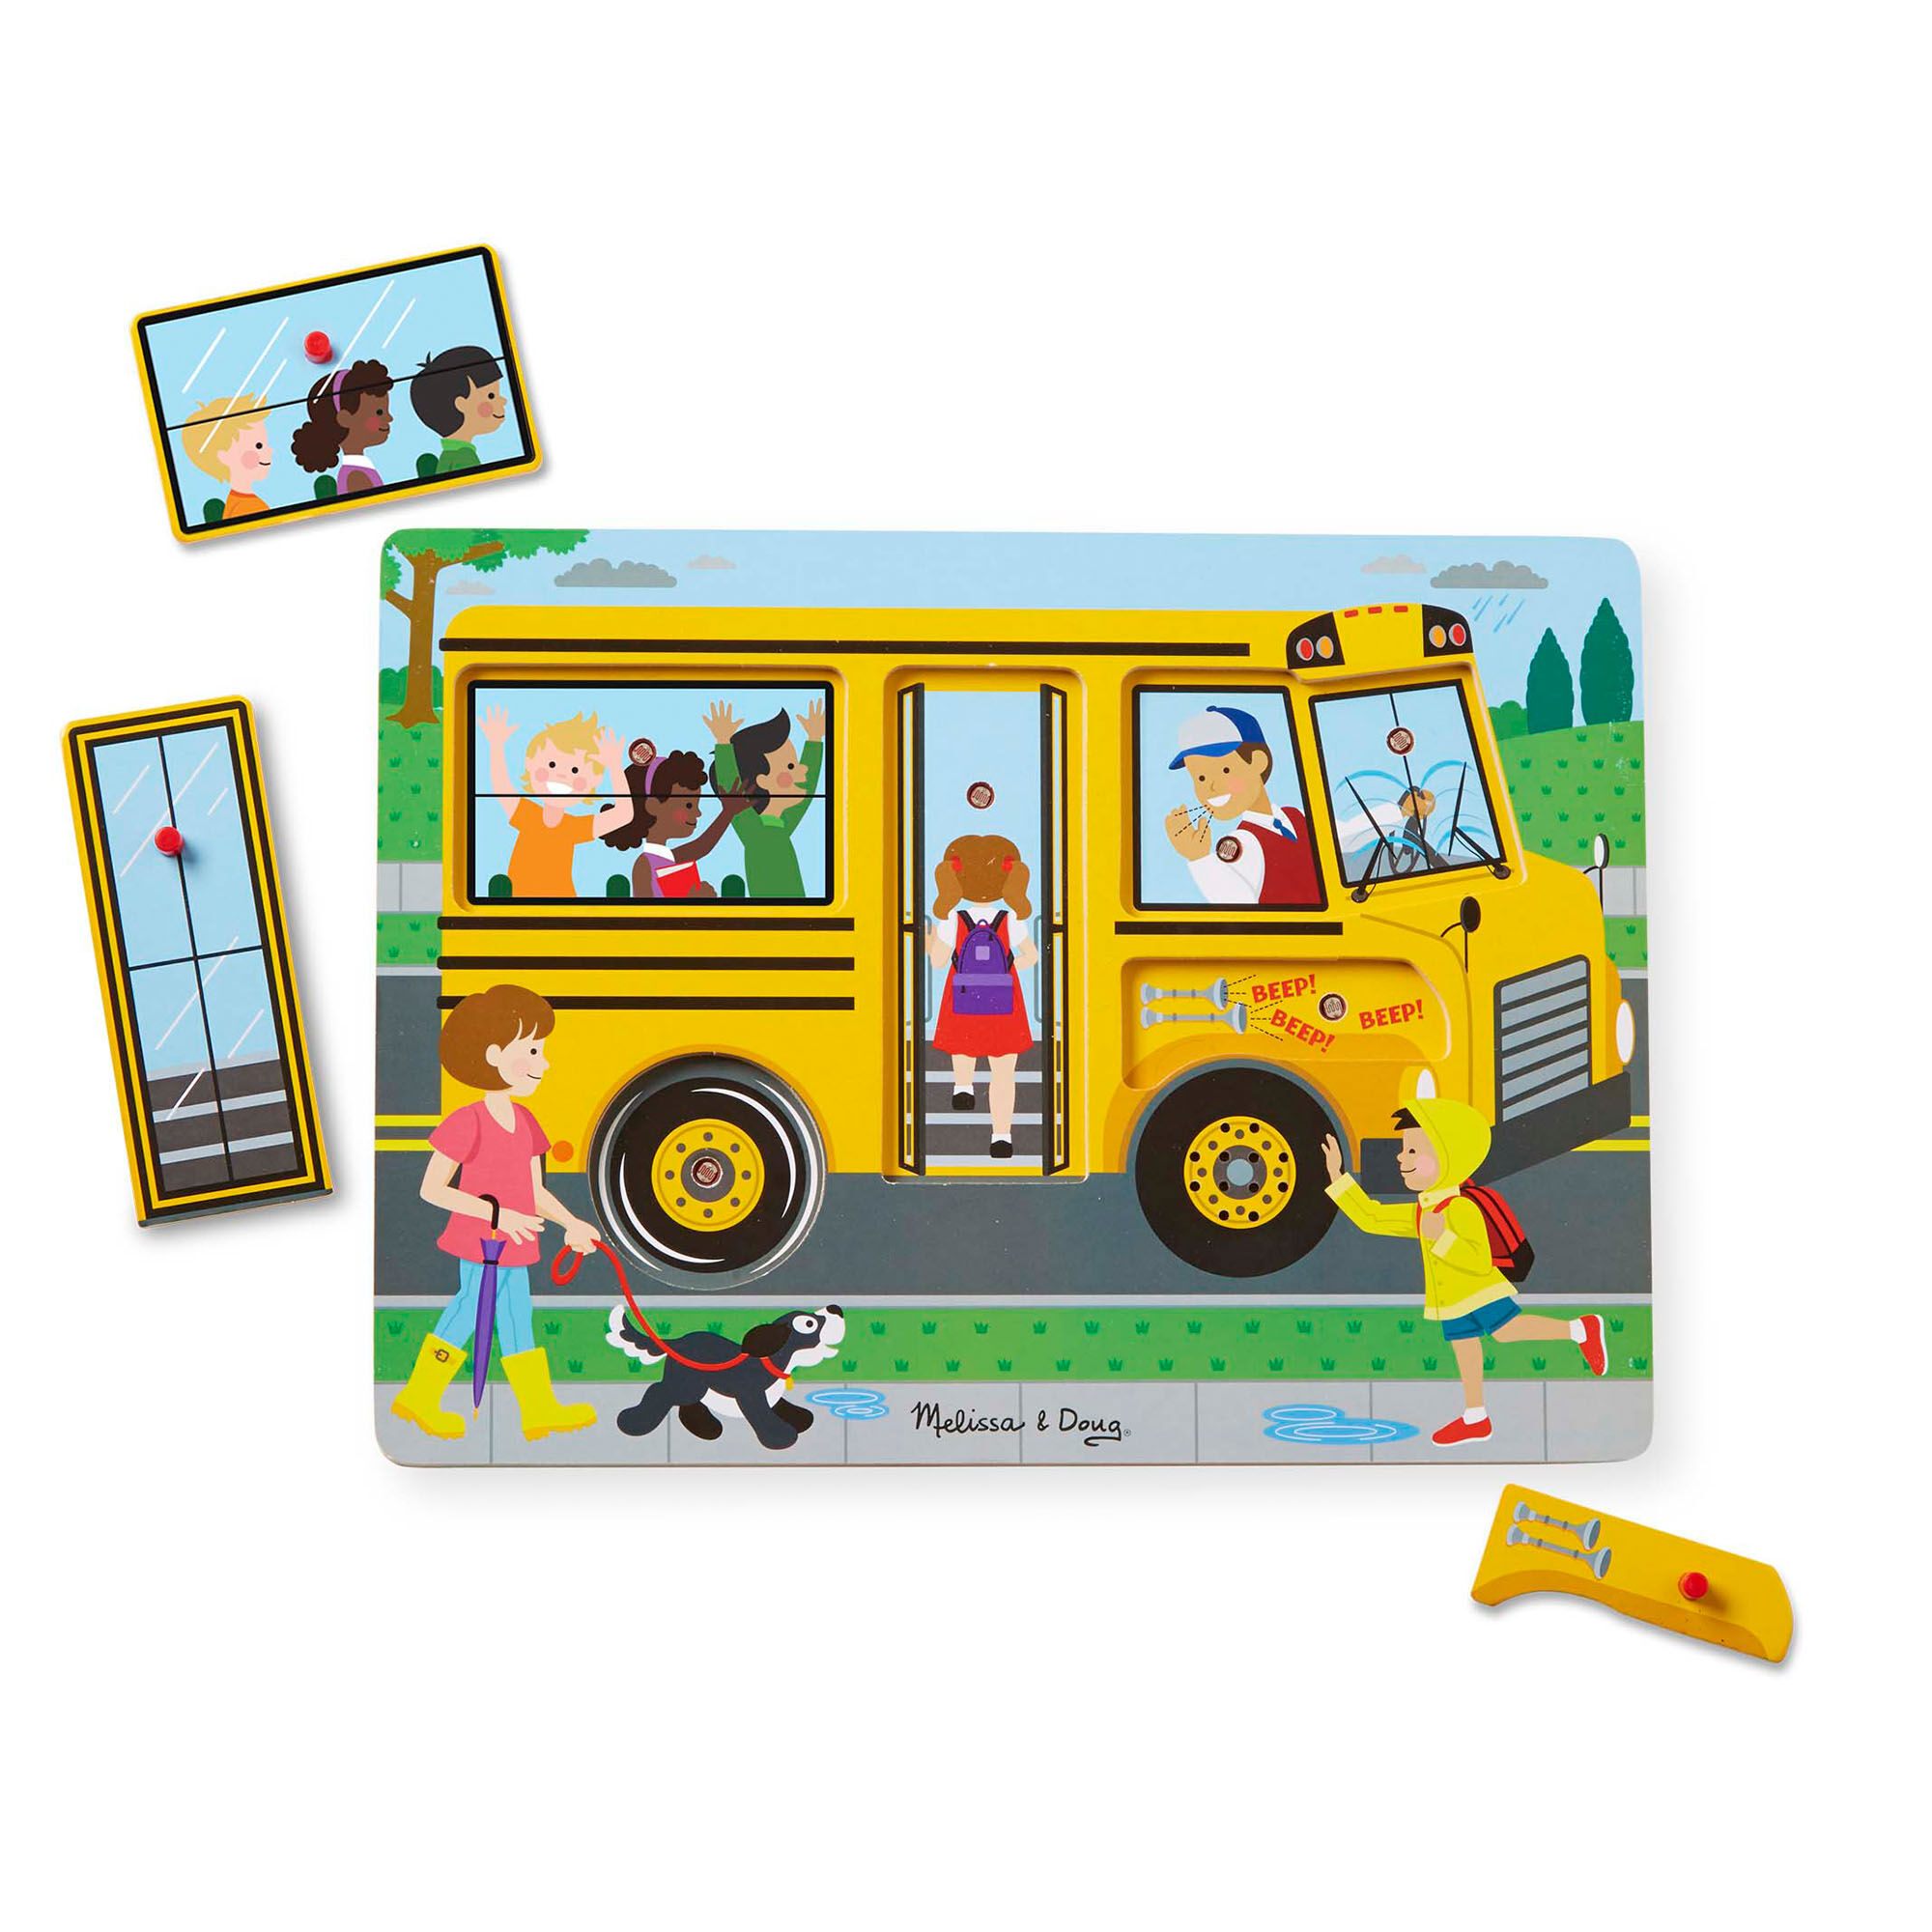 Wooden Jigsaw Floor Puzzle for Kids 24 Piece Vehicles Puzzles Storage in School Bus Toy